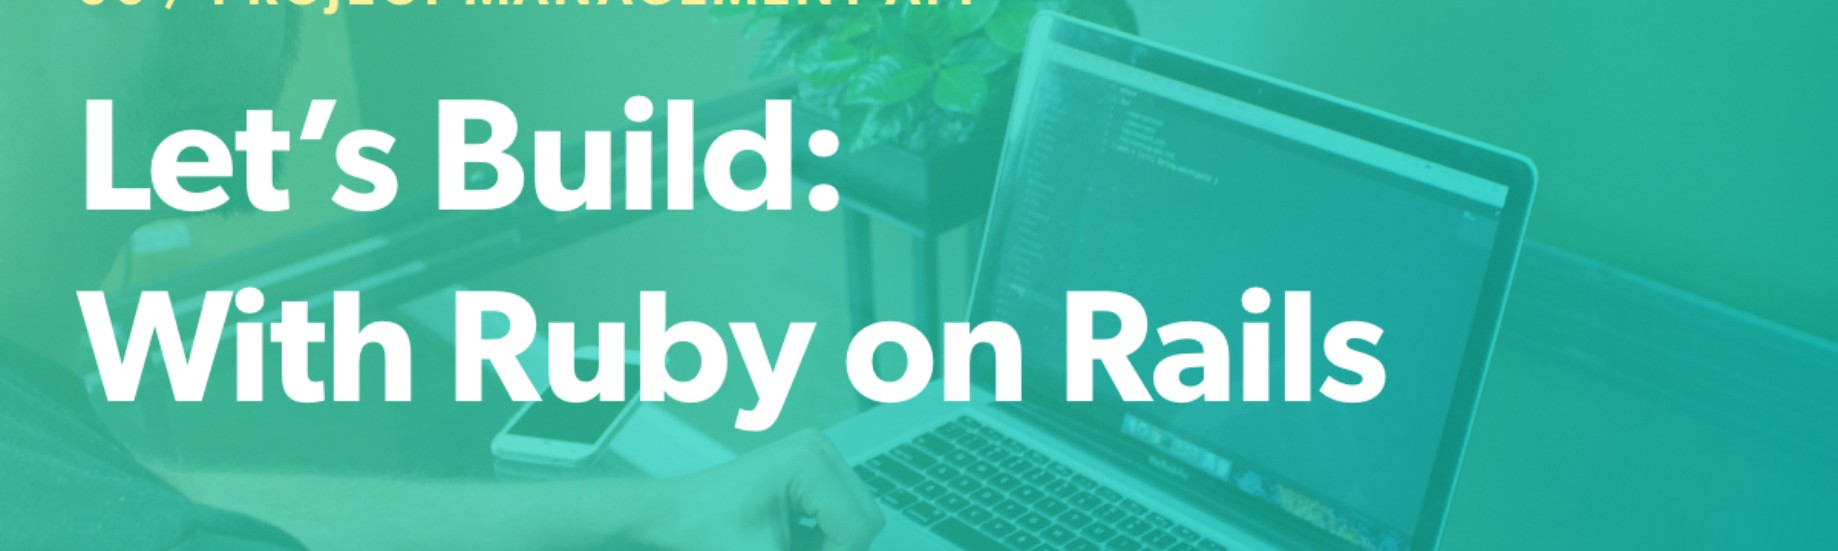 Let's Build: With Ruby On Rails - Project Management App – Web-Crunch